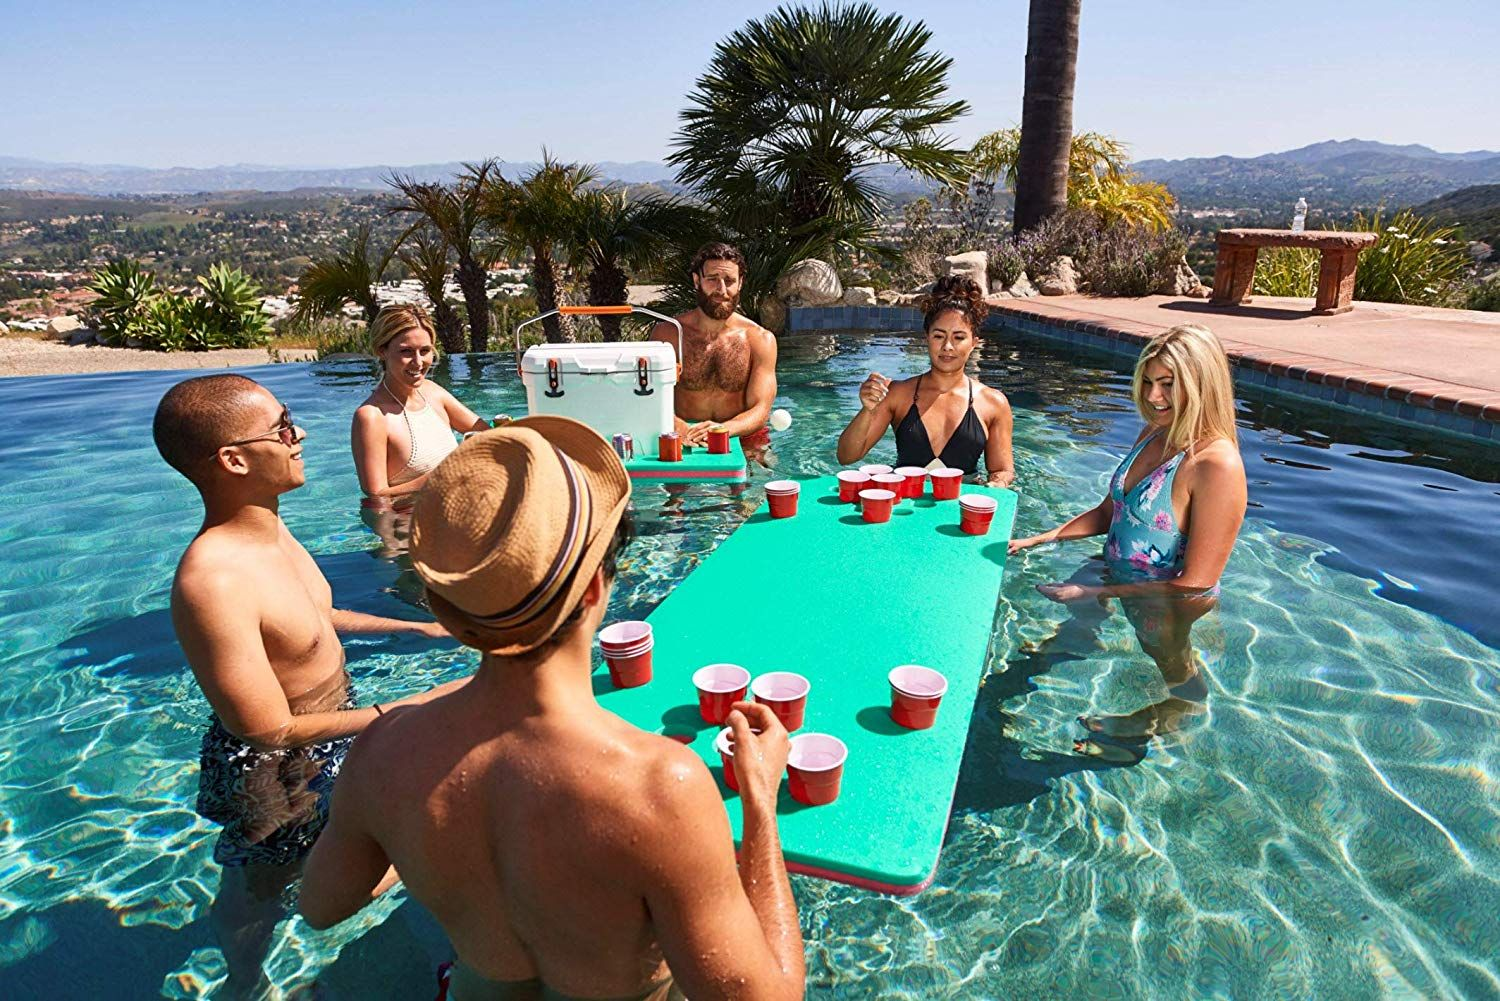 The Floating Beer Pong Table Dayrole Com Floating Beer Pong Table Beer Pong Tables Beer Pong